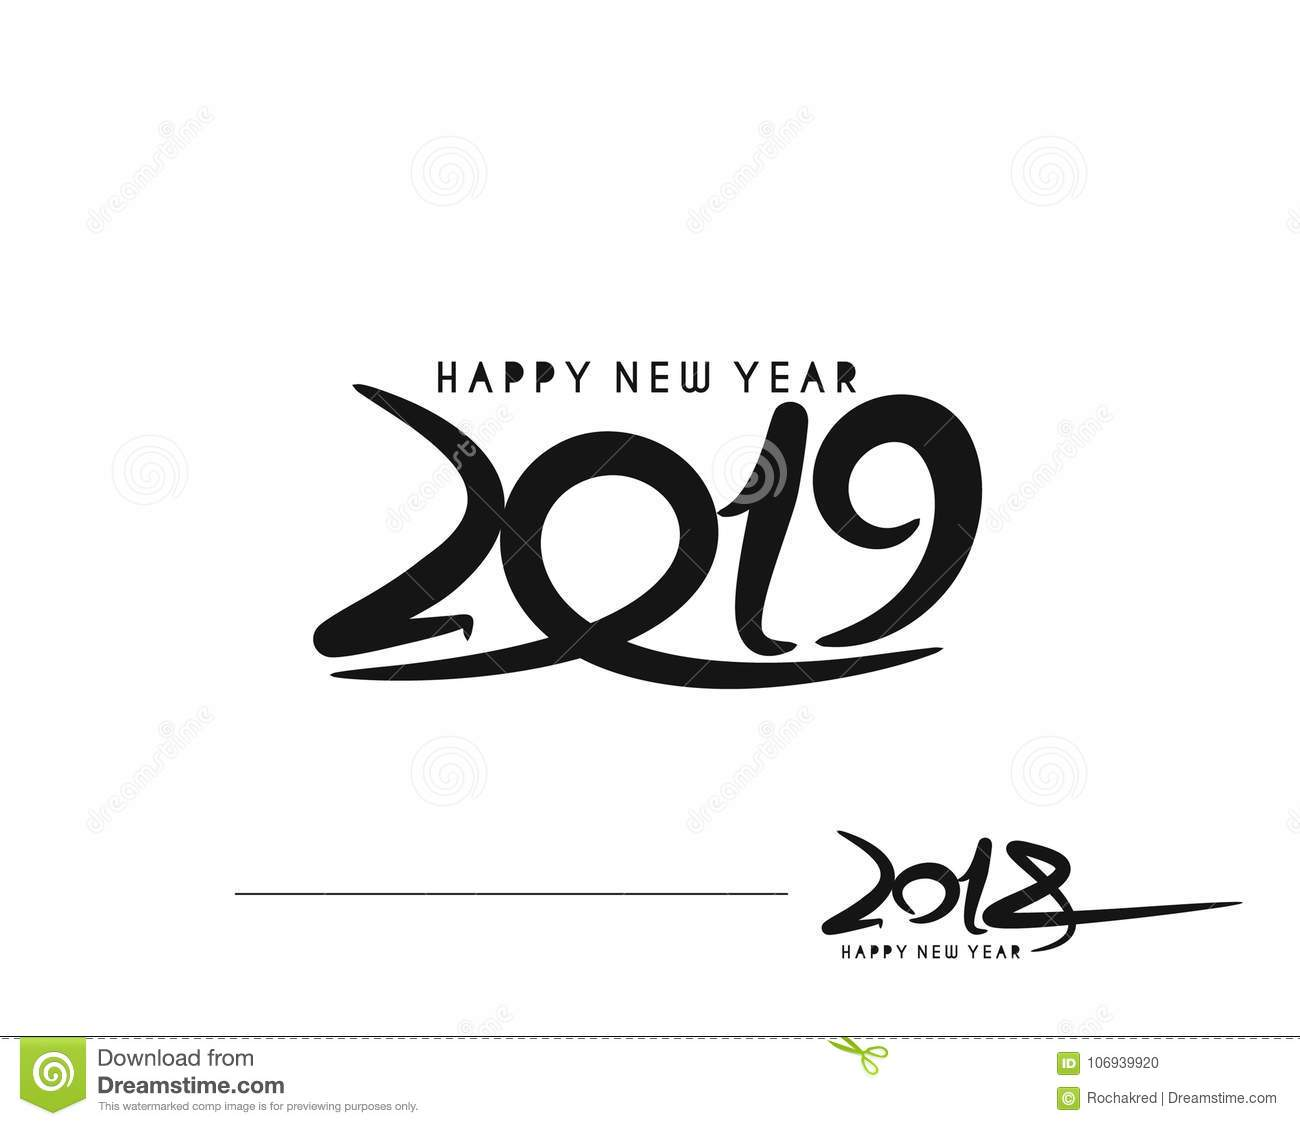 Impressionnant Dessin Happy New Year 39 Avec supplémentaire Coloriage Pages for Dessin Happy New Year